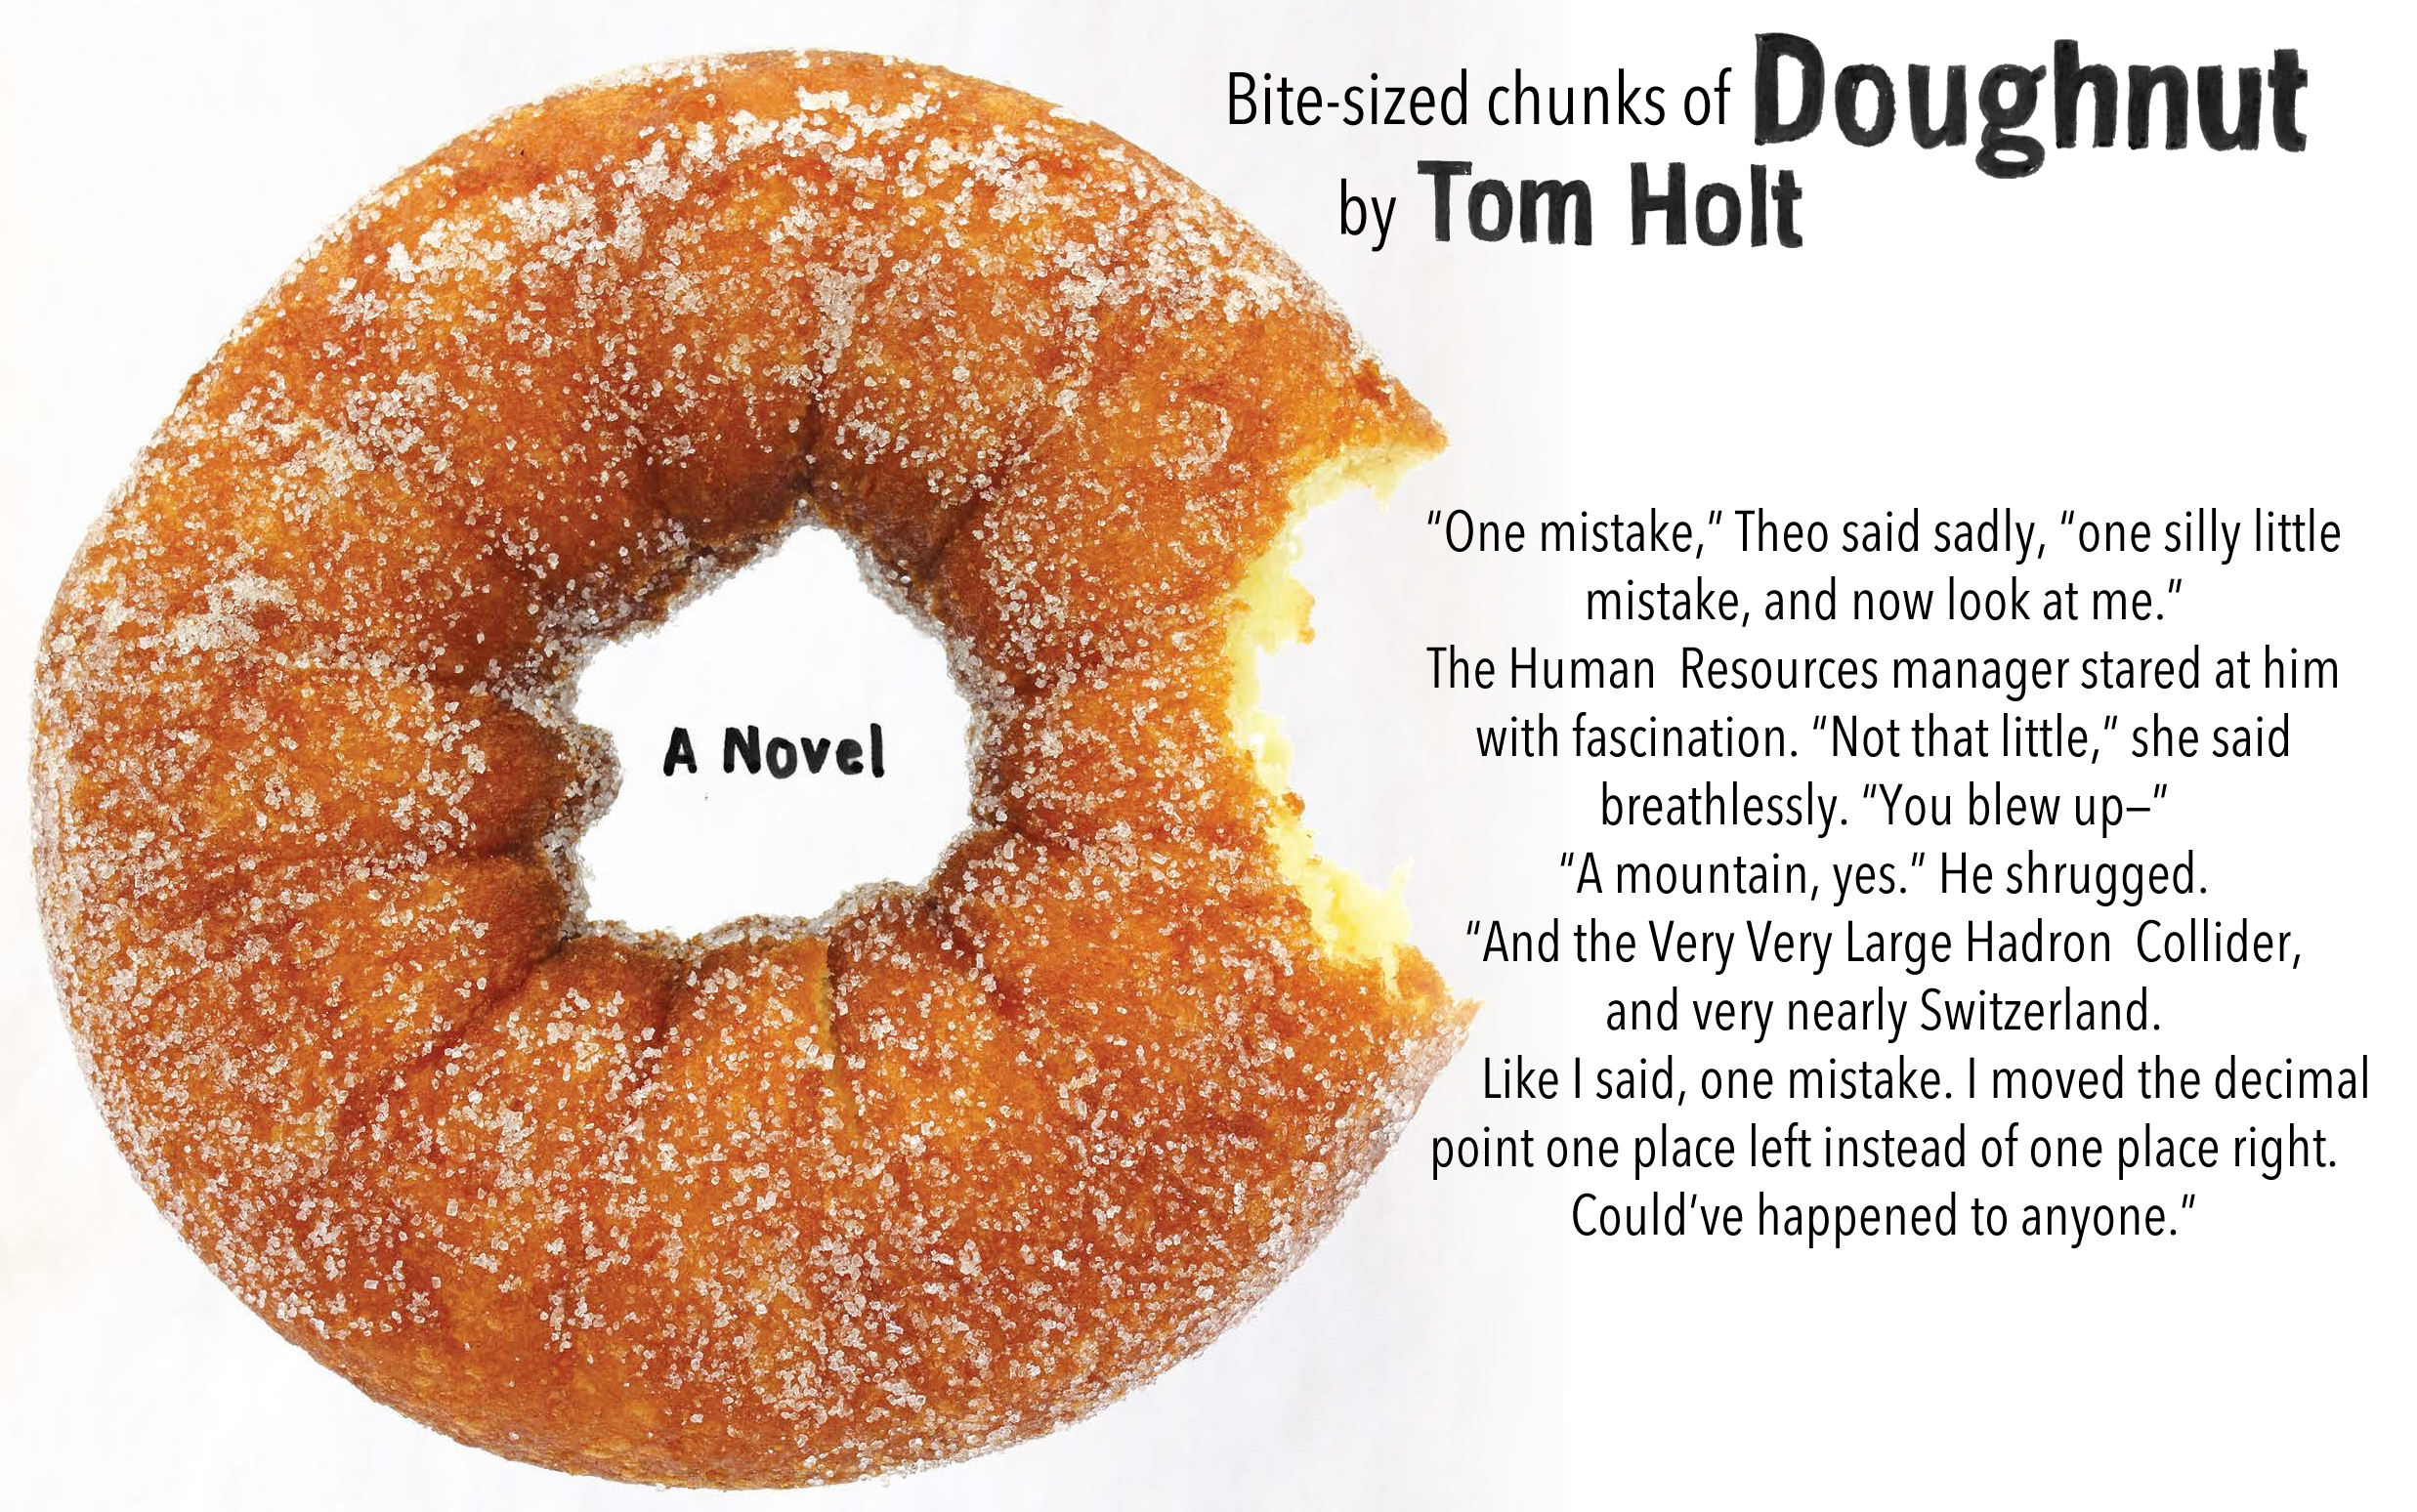 Bite-sized quote: Doughnut by Tom Holt